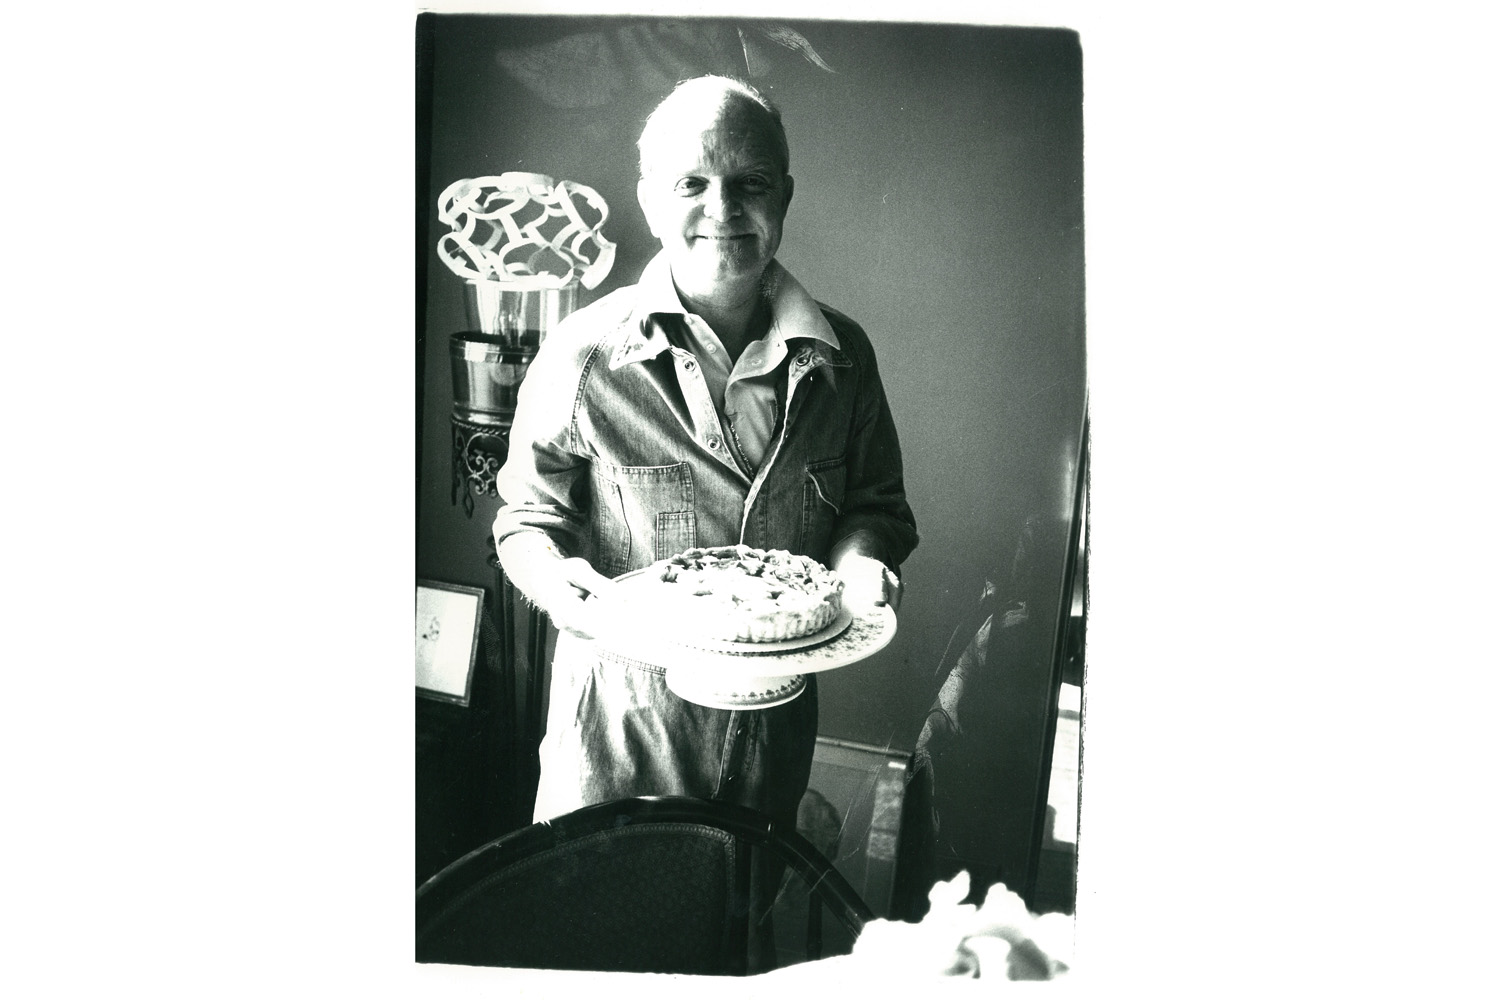 Truman Capote with Cake